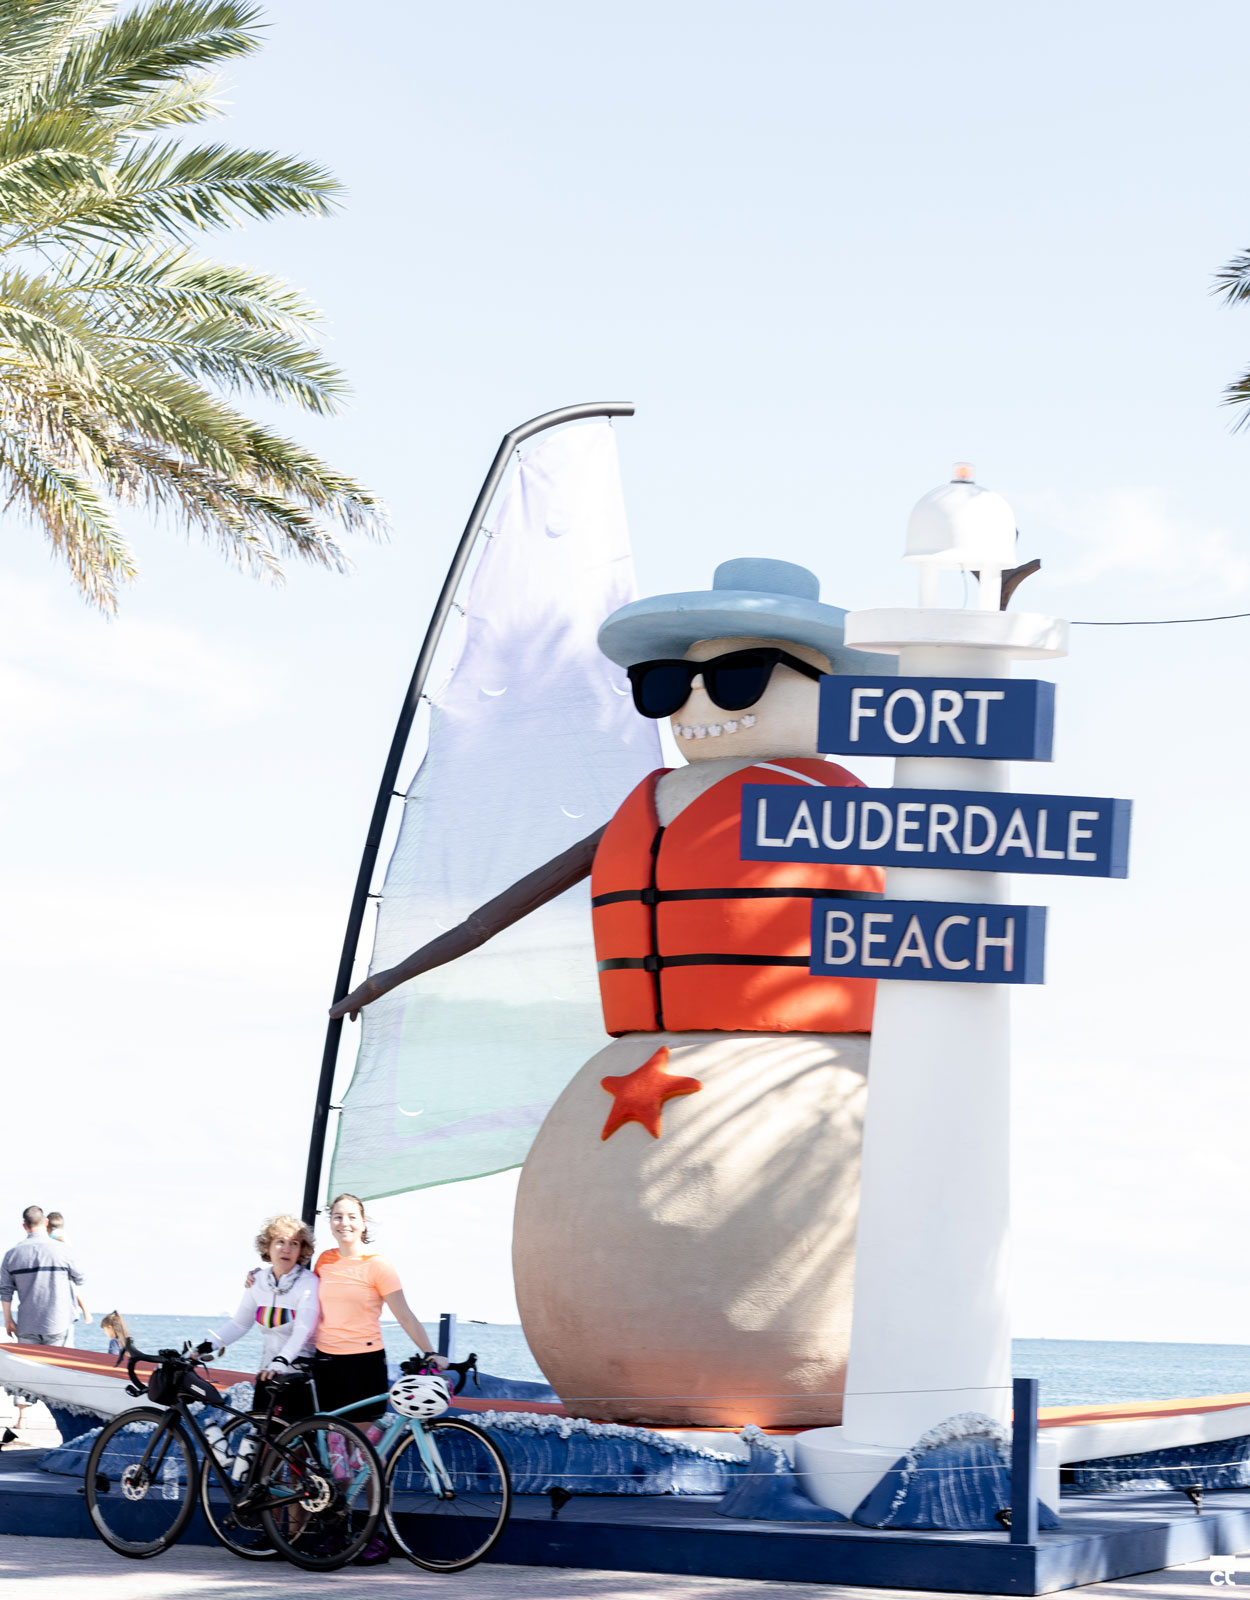 FORT LAUDERDALE BEACH - Fort Lauderdale Travel Guide: 25 Things to Do in Fort Lauderdale, Florida - CHRISTOBEL TRAVEL